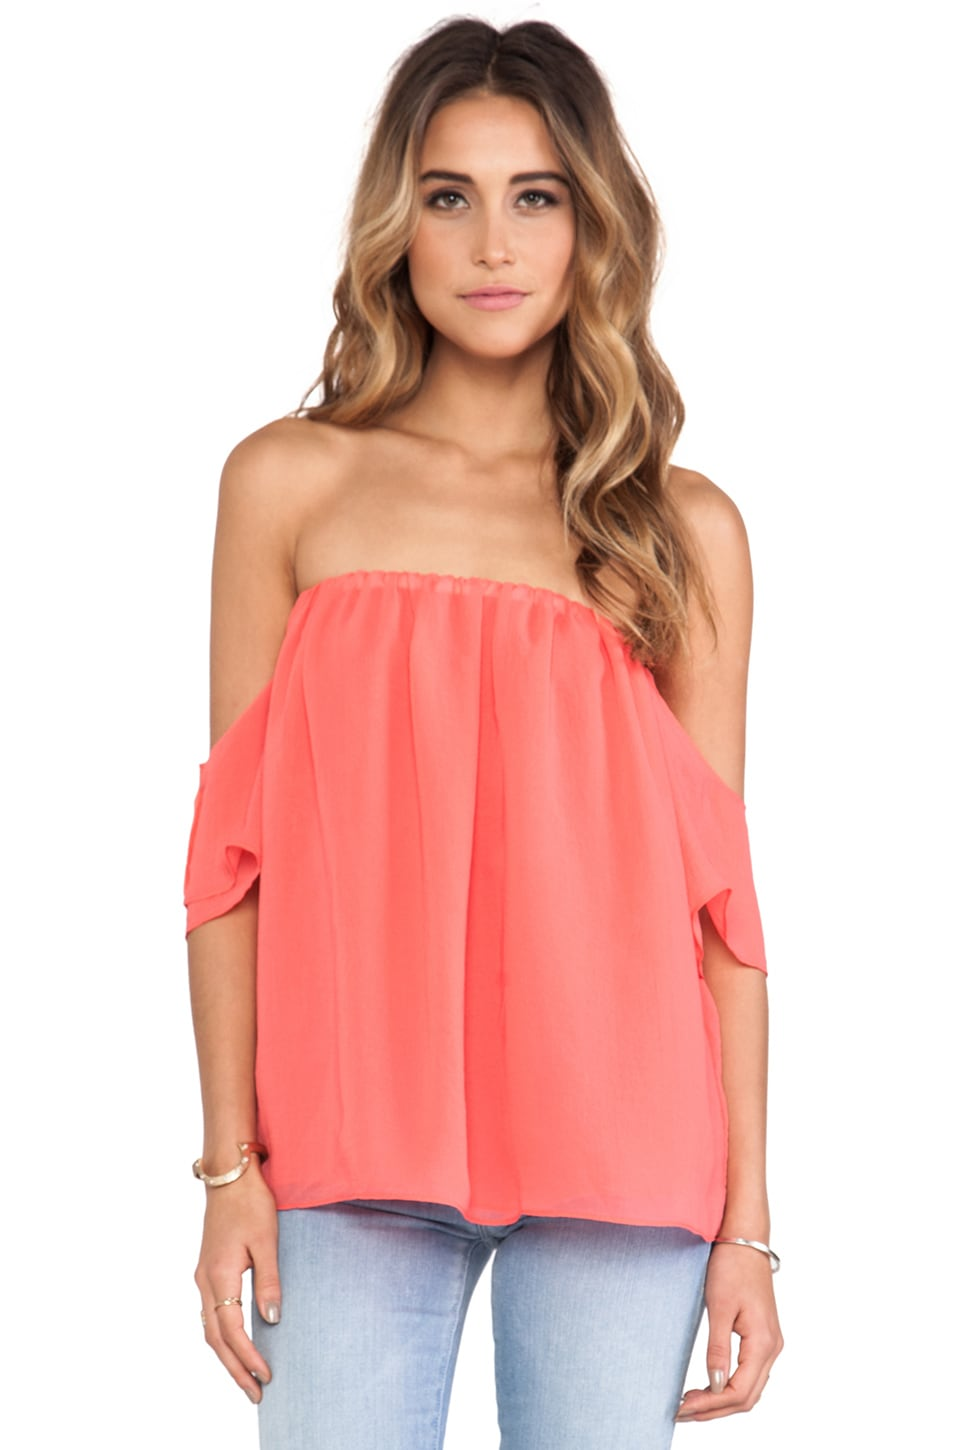 T-Bags LosAngeles Off The Shoulder Top in Watermelon